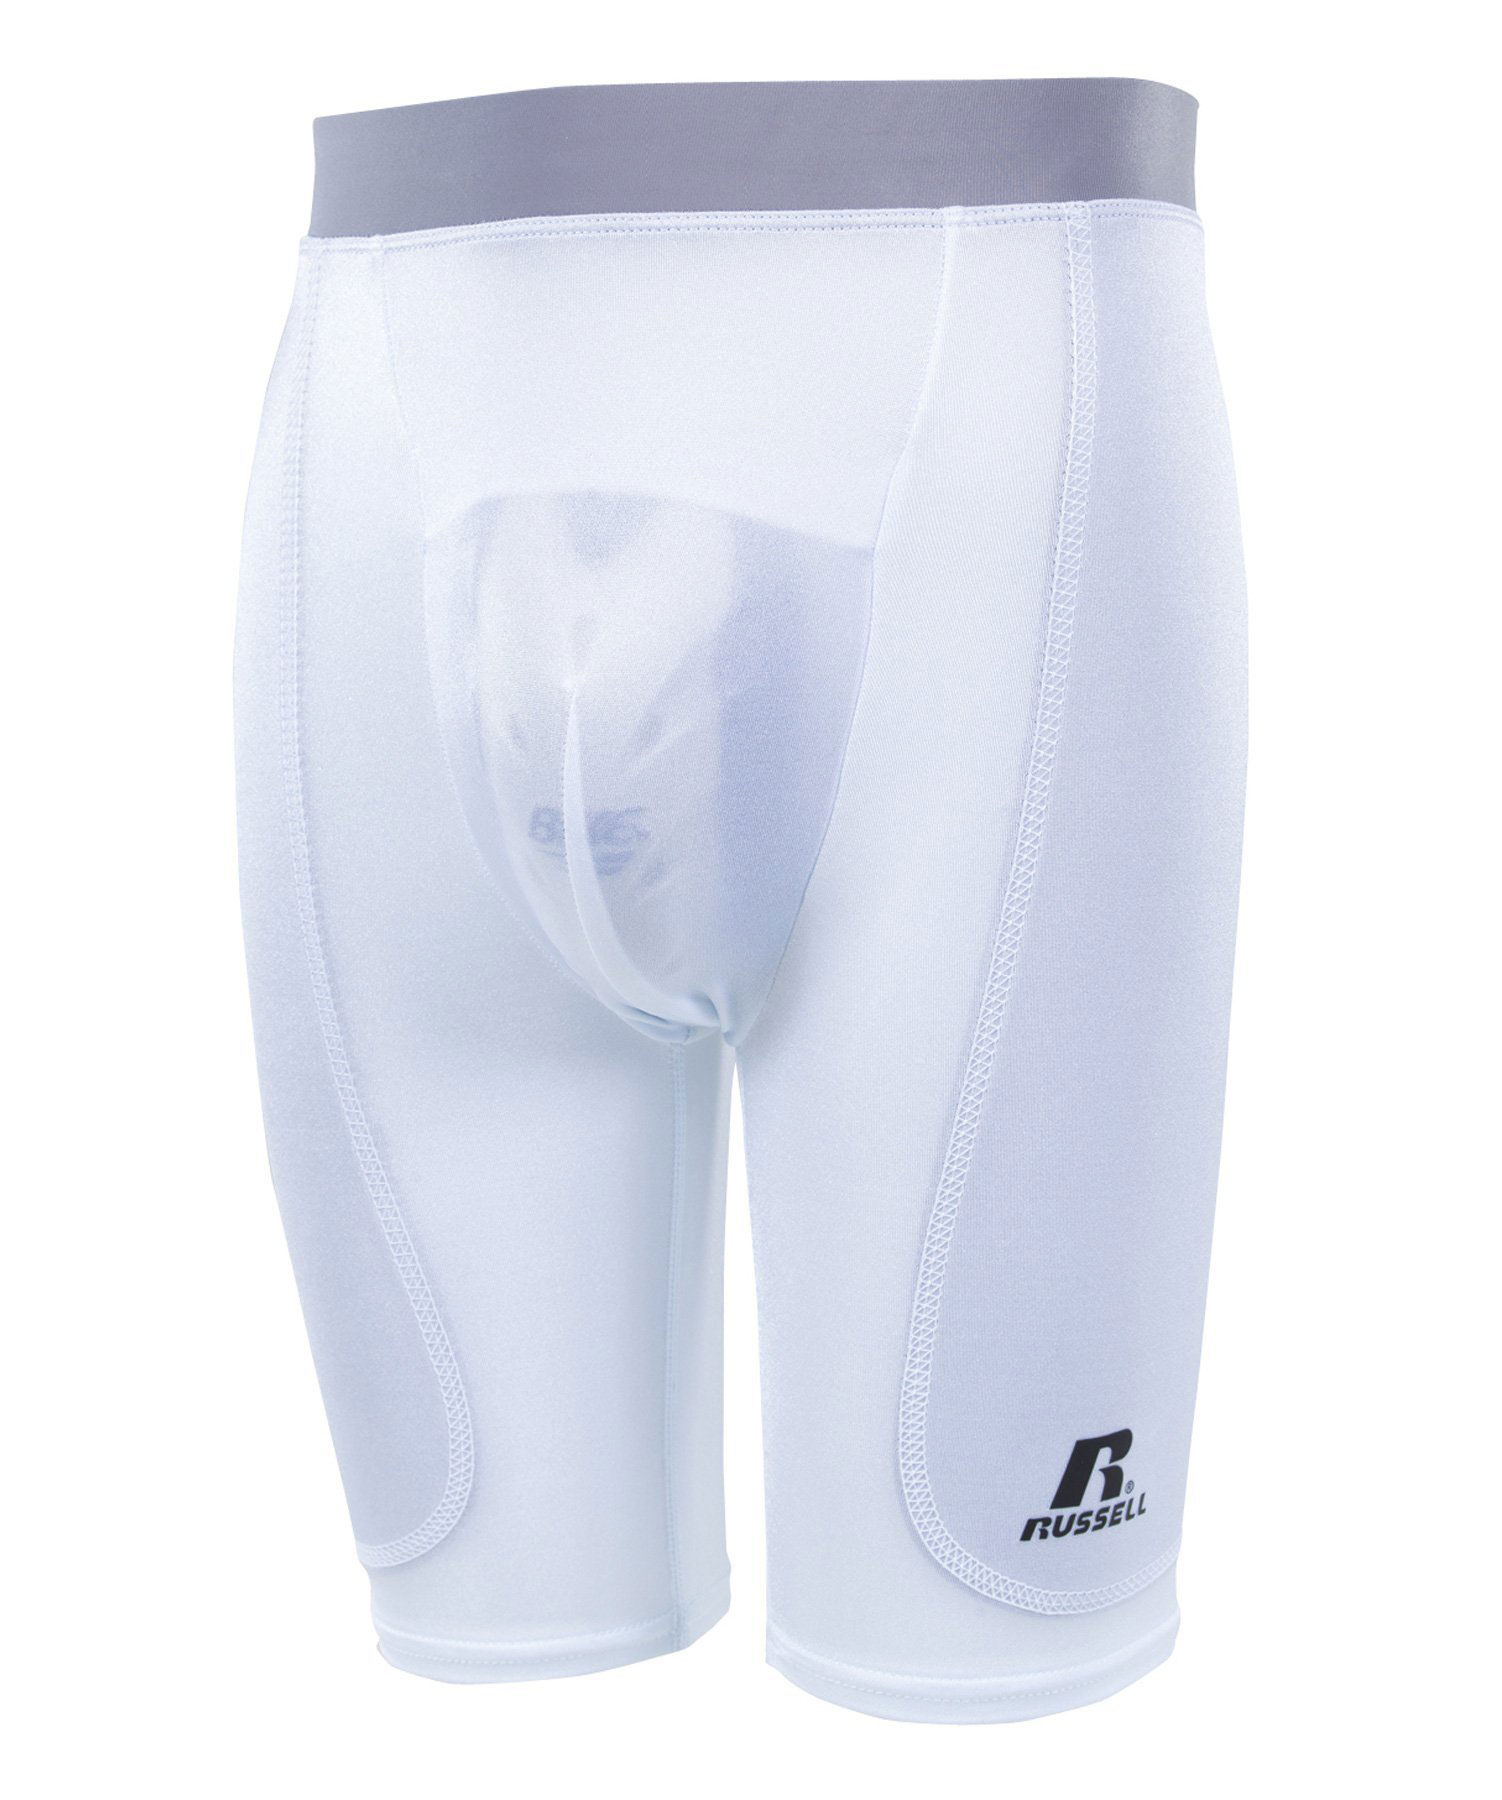 Russell Athletic Youth Dual Layered Cup Pocket Sliding Short